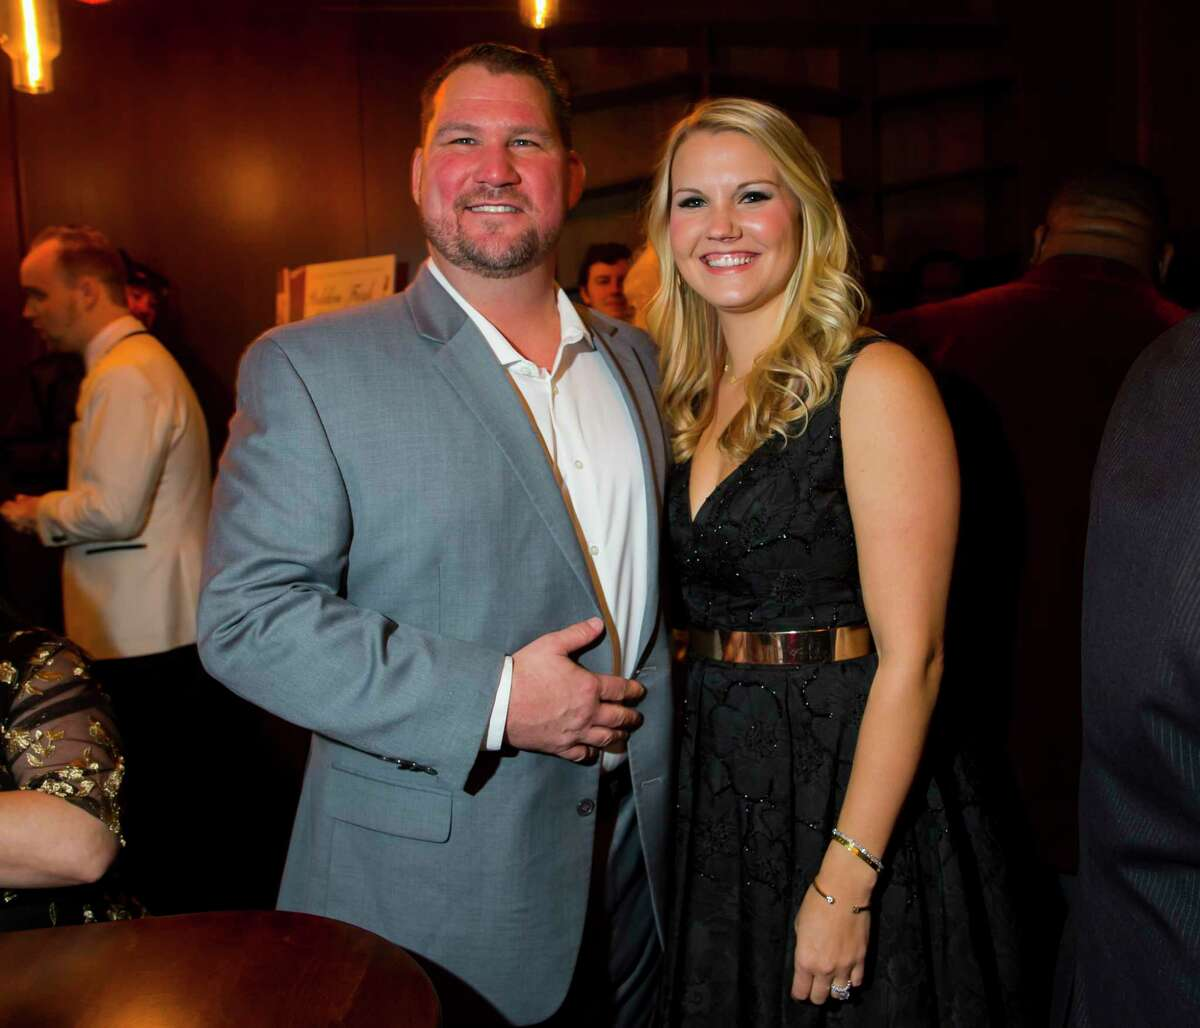 Restaurateurs of the Year Paul Miller and Doris Miller of GR8 Plate Hospitality at the Greater Houston Restaurant Association's Golden Fork Awards Gala downtown on Saturday, Jan. 13, 2018.